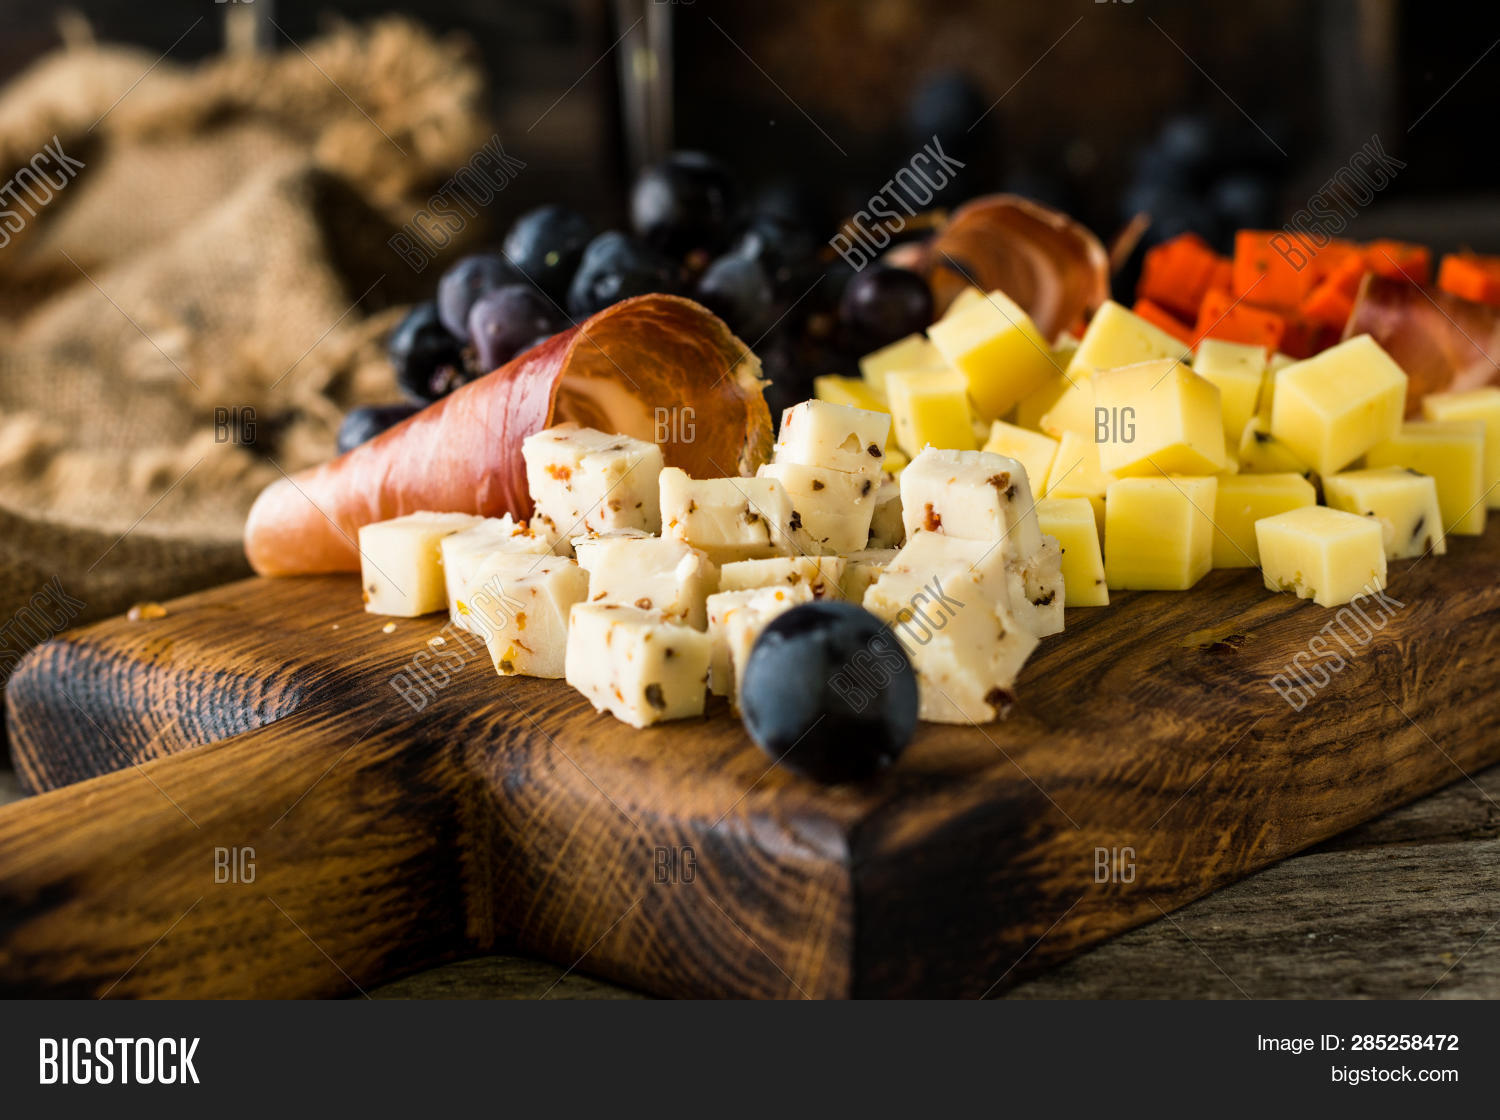 Assorted Cheeses On Image & Photo (Free Trial) | Bigstock